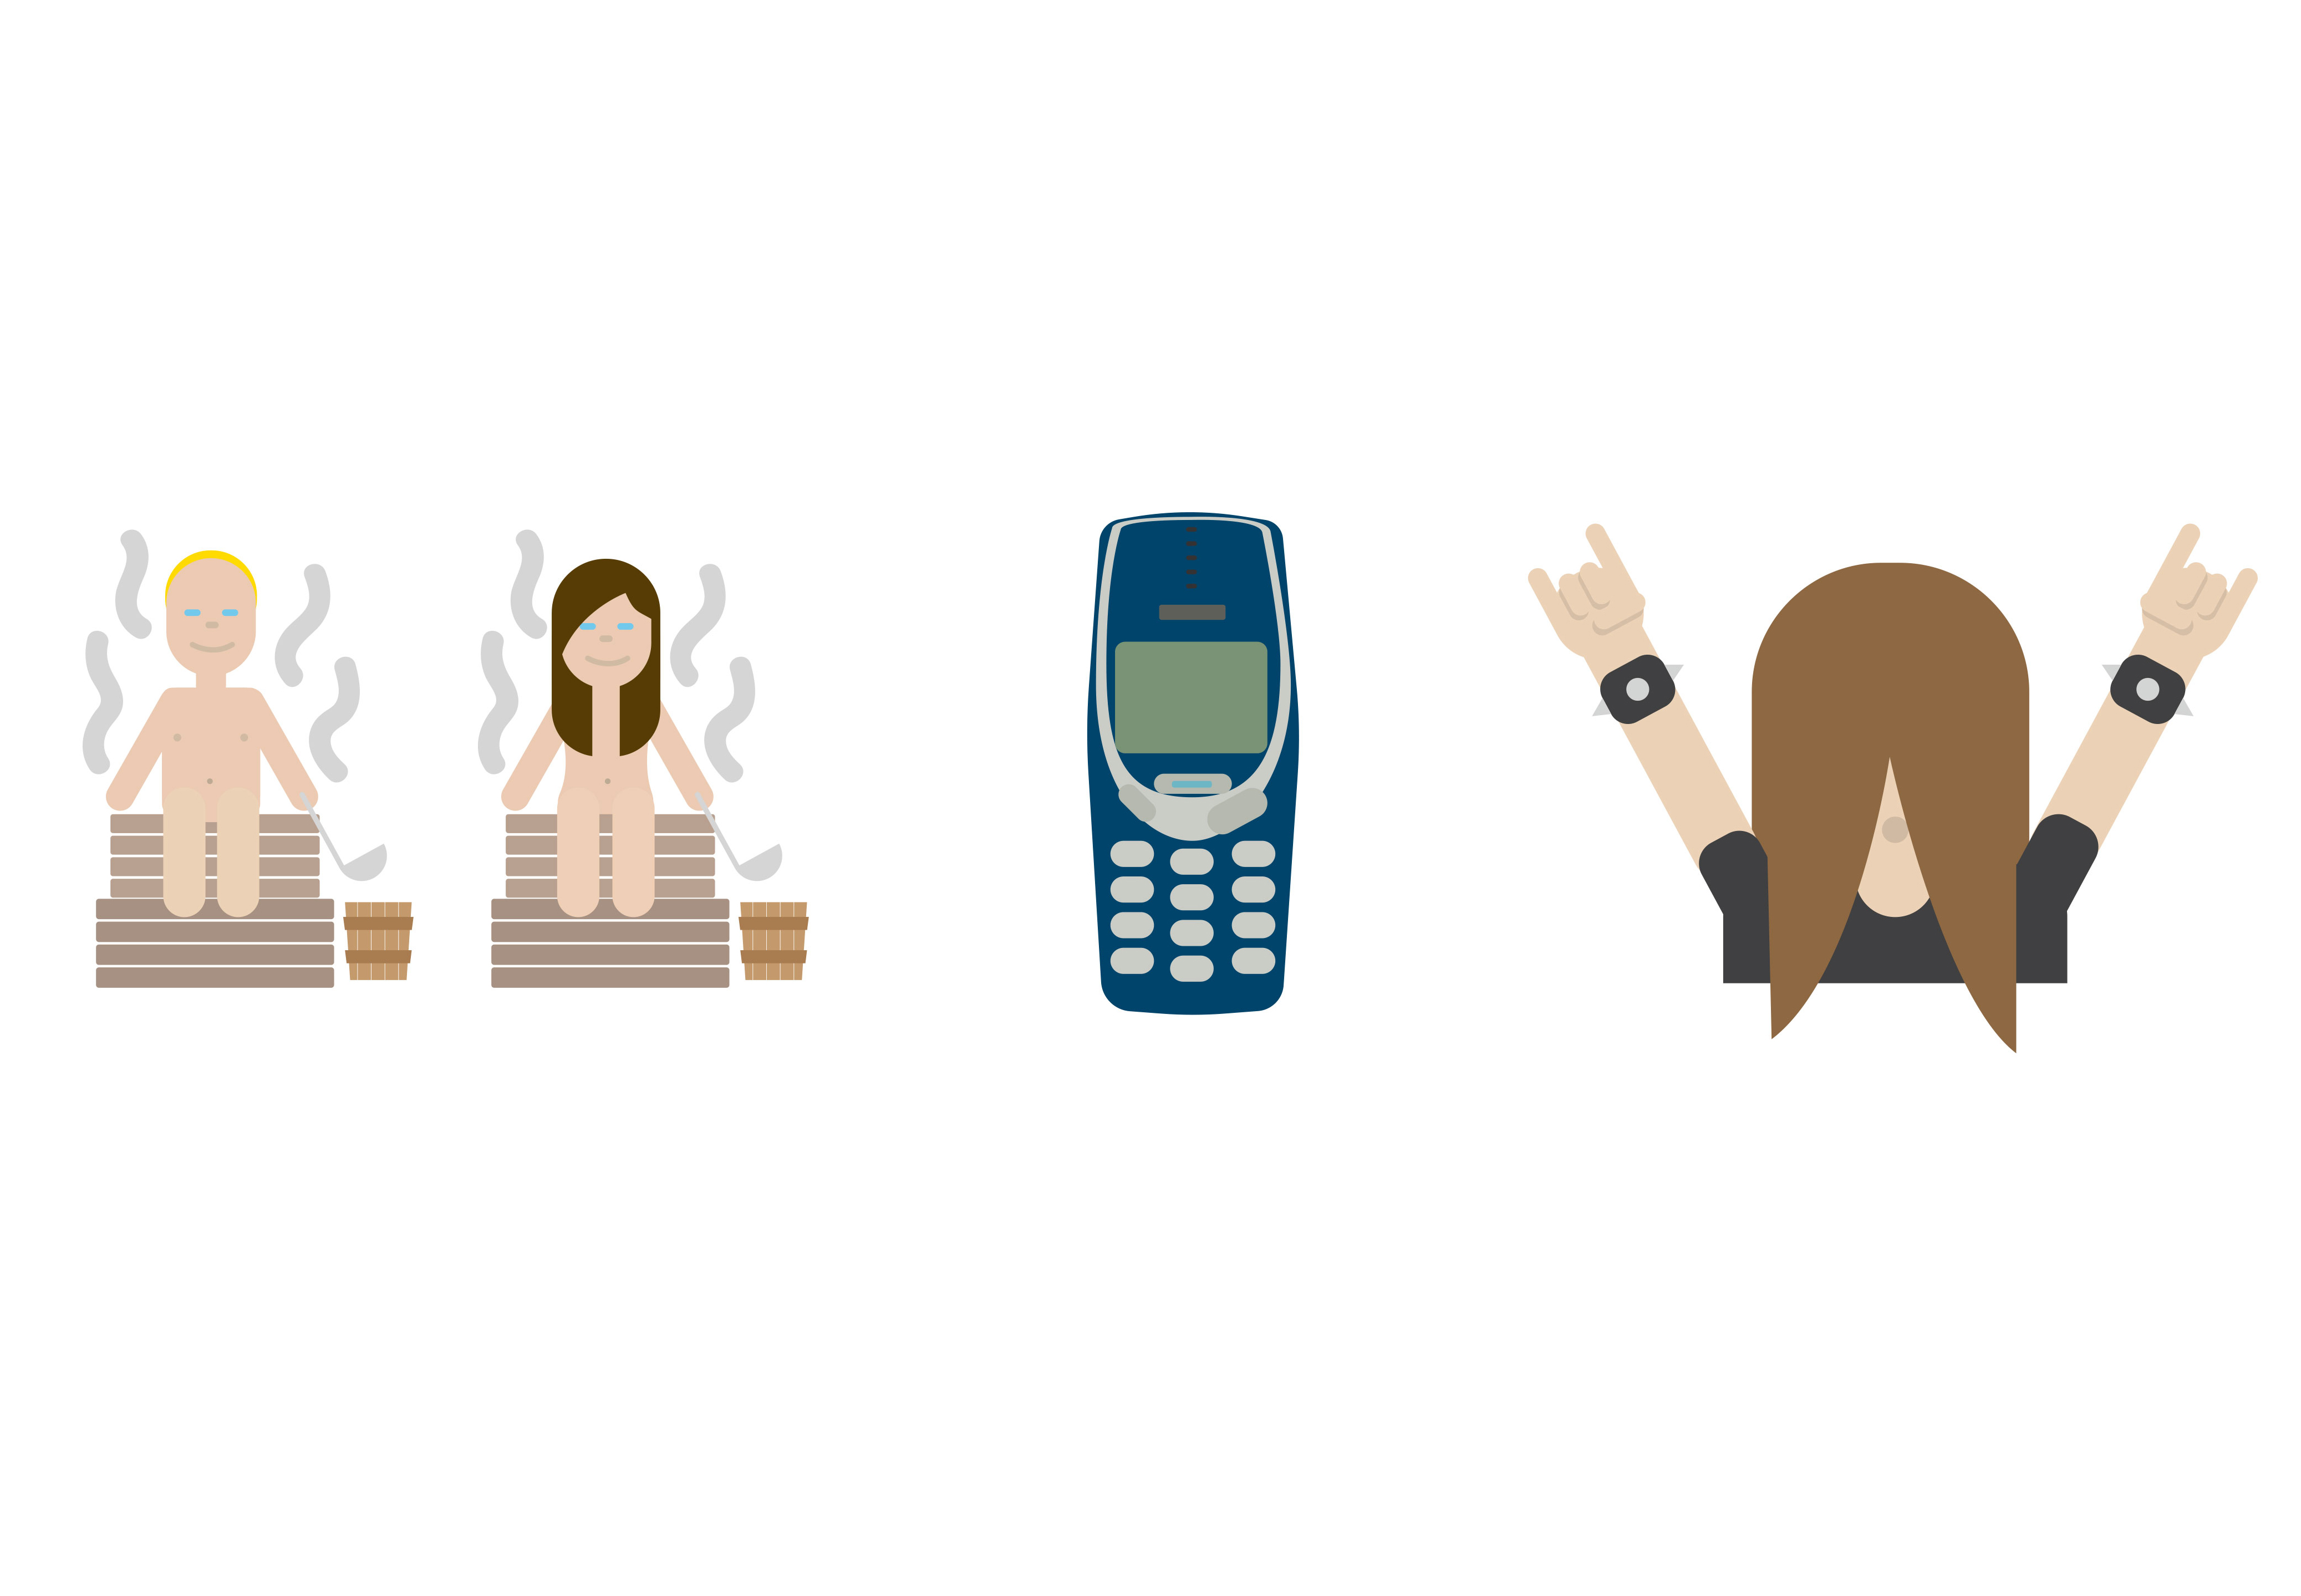 Computer-generated emojis made available by Finland's Foreign Ministry include people sweating in saunas, classic Nokia phones and heavy metal head-bangers.